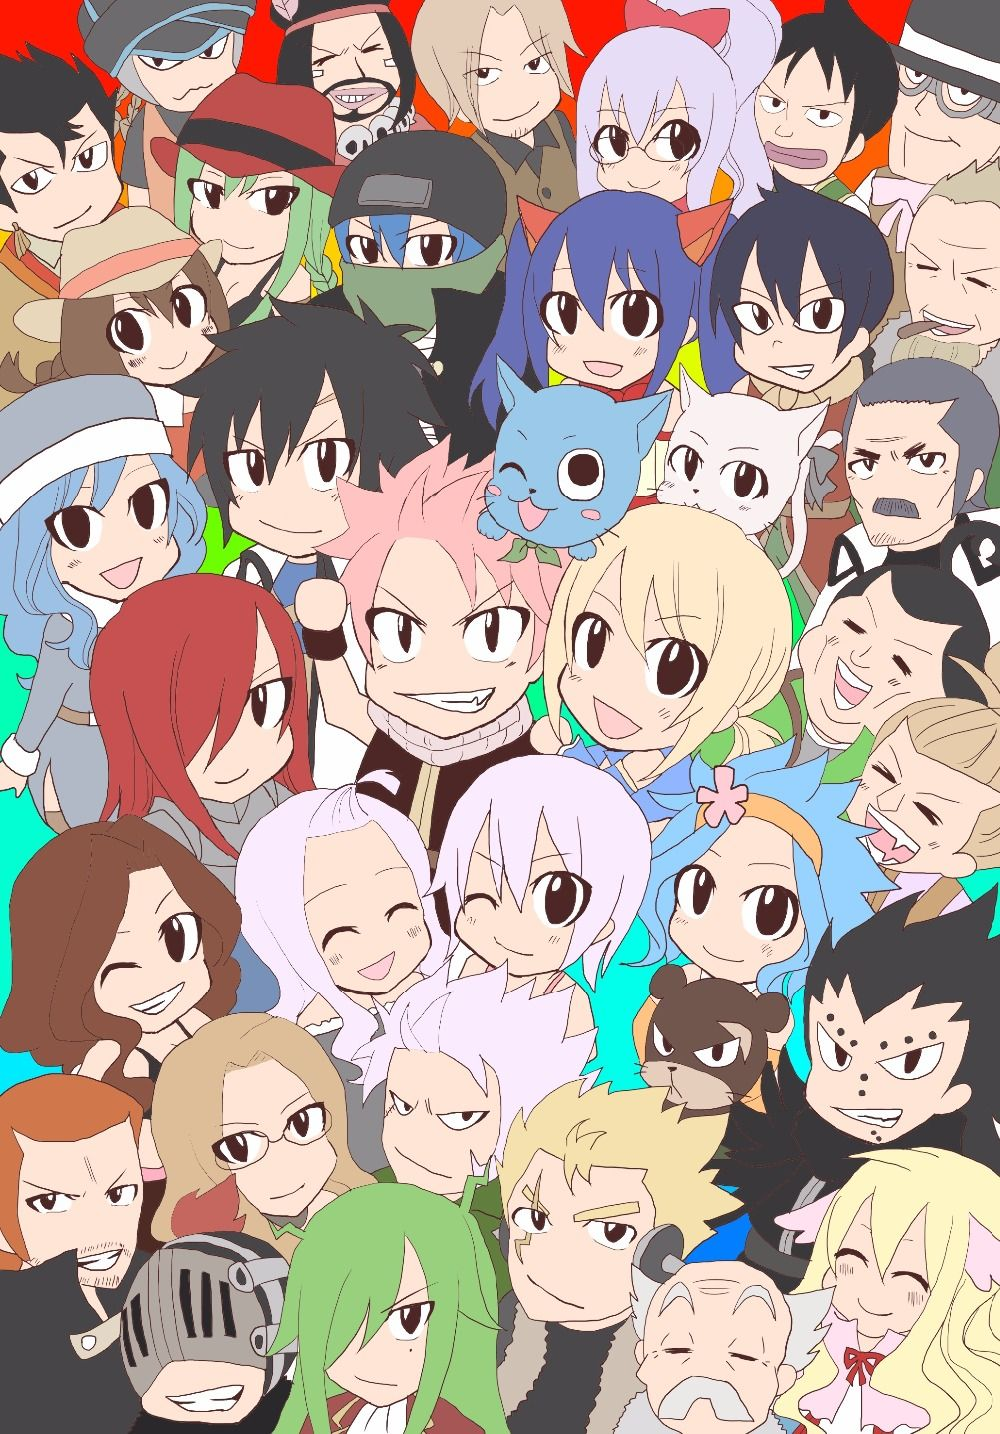 Fairy Tail Chibi 1000x1434 Wallpaper Teahub Io Our goal is for newgrounds to be ad free for everyone! fairy tail chibi 1000x1434 wallpaper